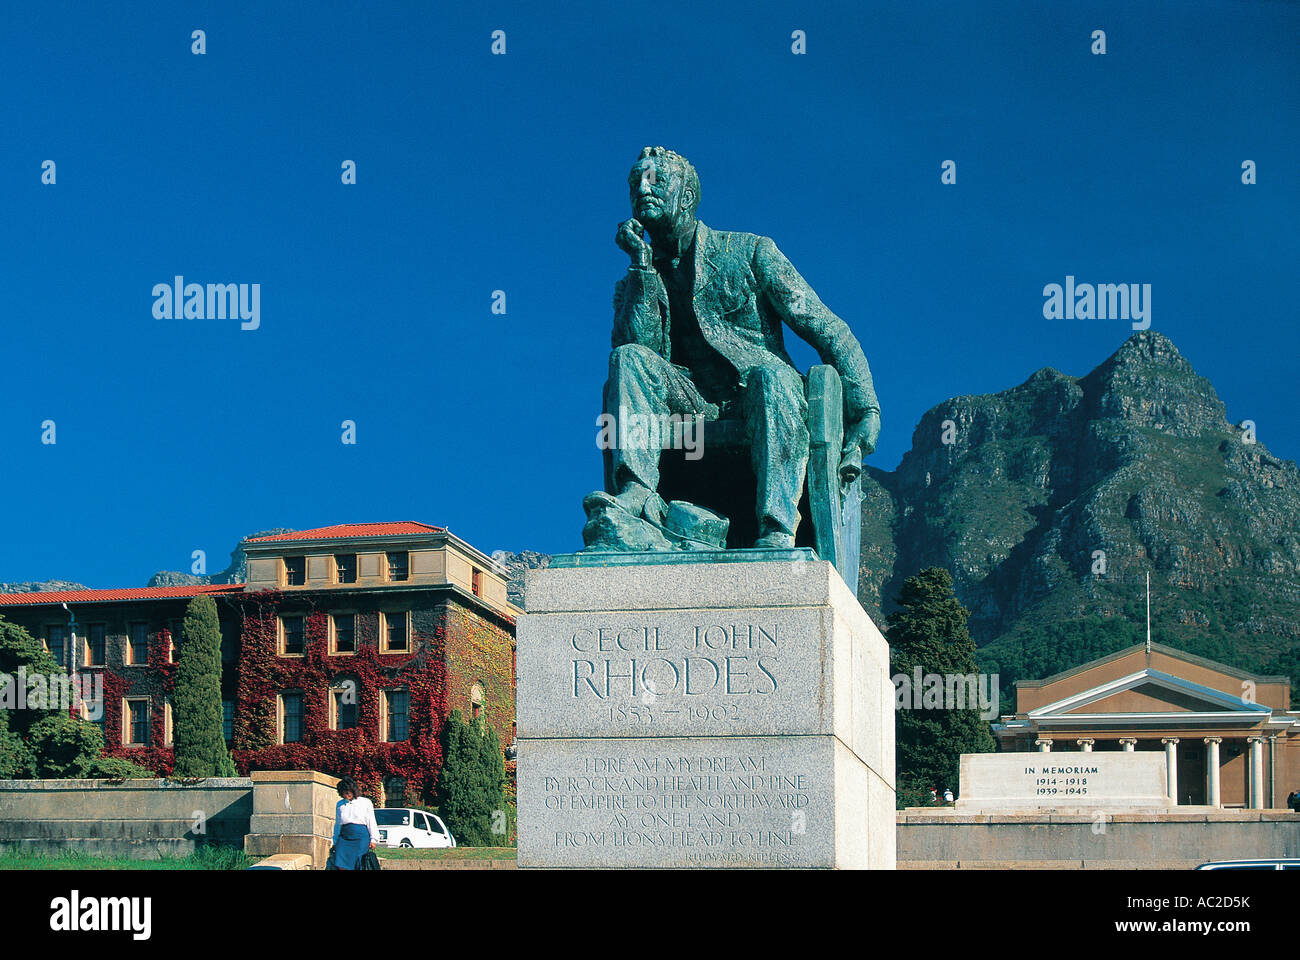 Statue of Cecil John Rhodes in the grounds of the University of Cape Town South Africa - Stock Image